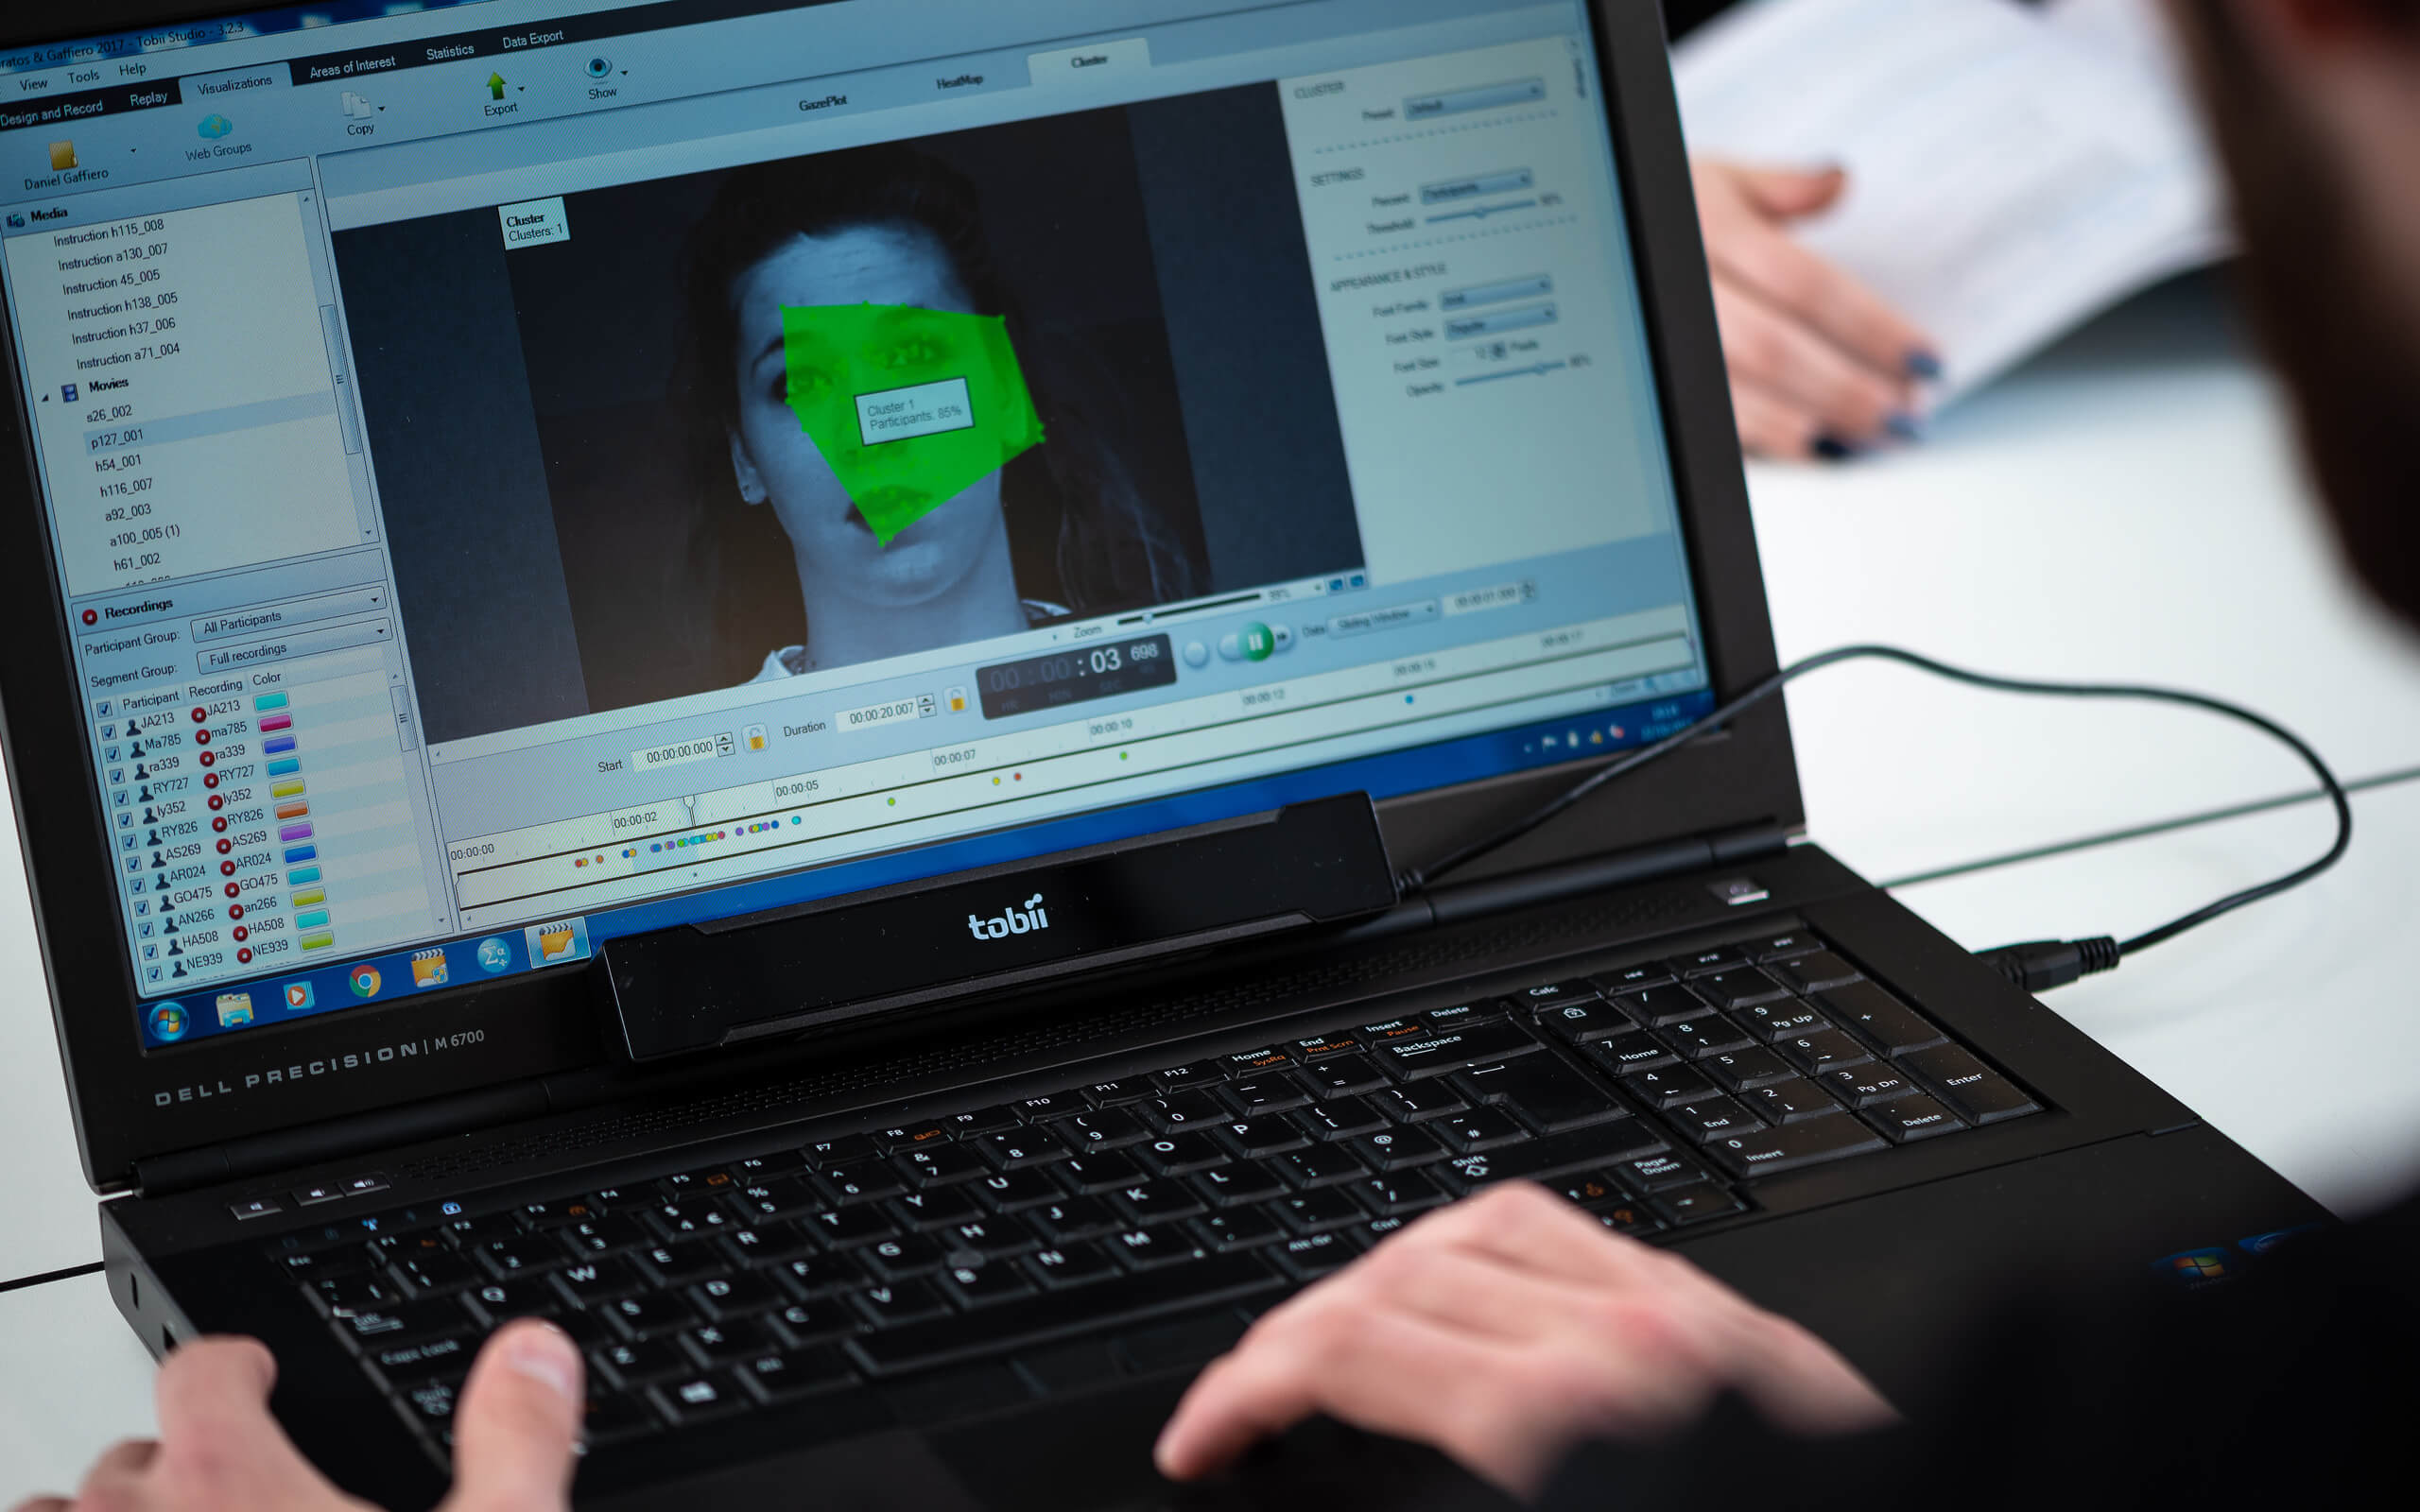 A student using psychological imaging software on a laptop